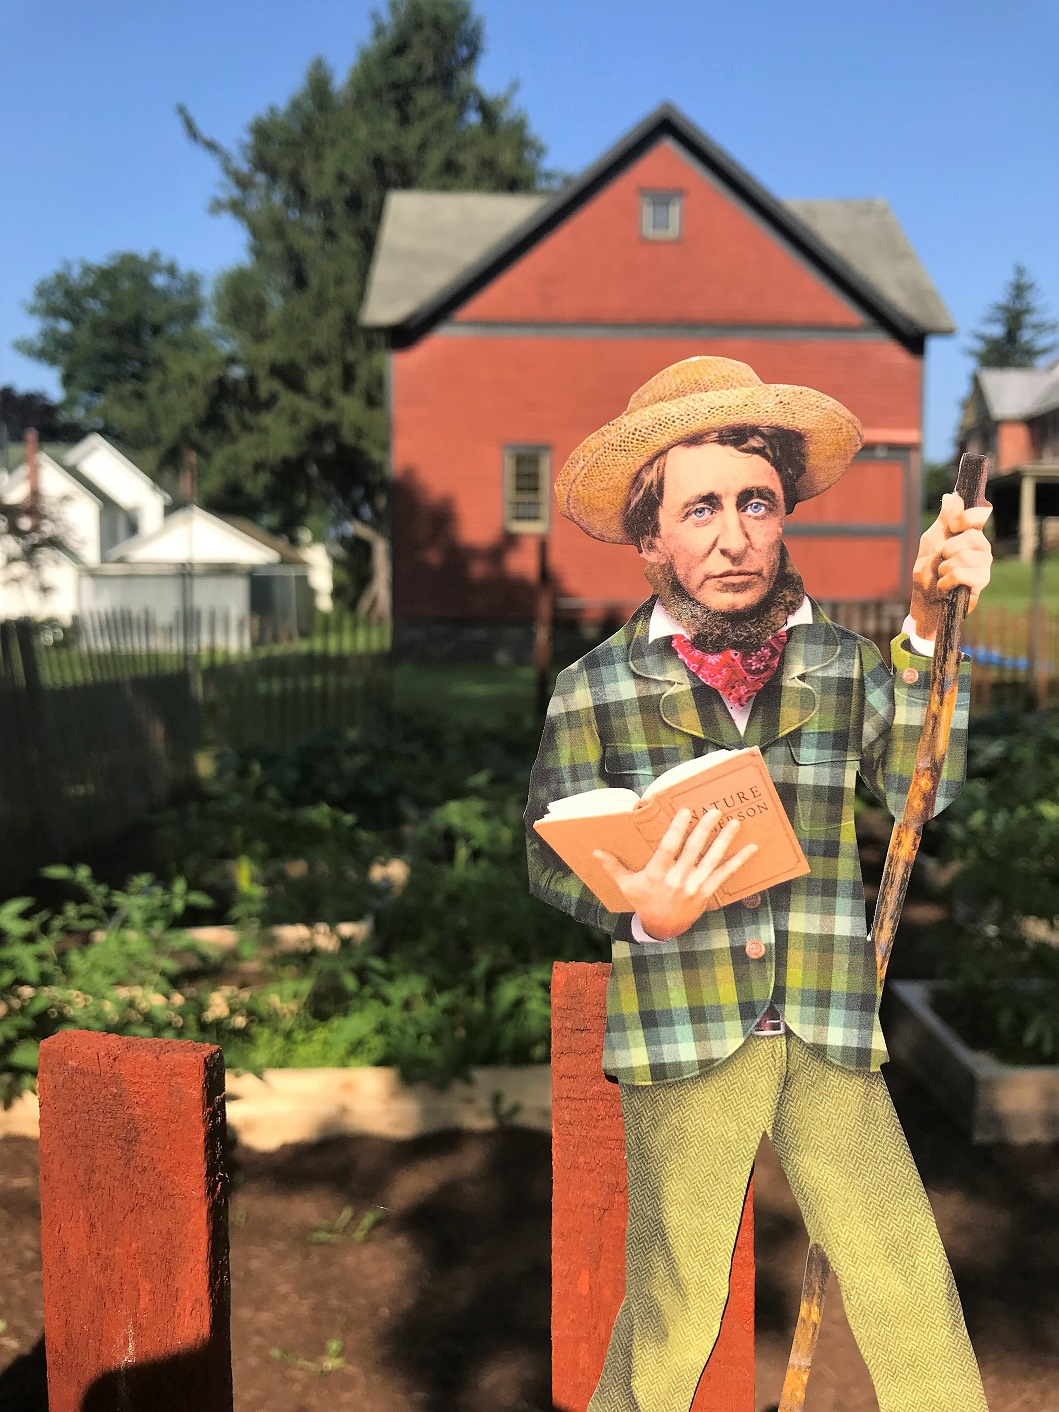 Thoreau standing in my garden